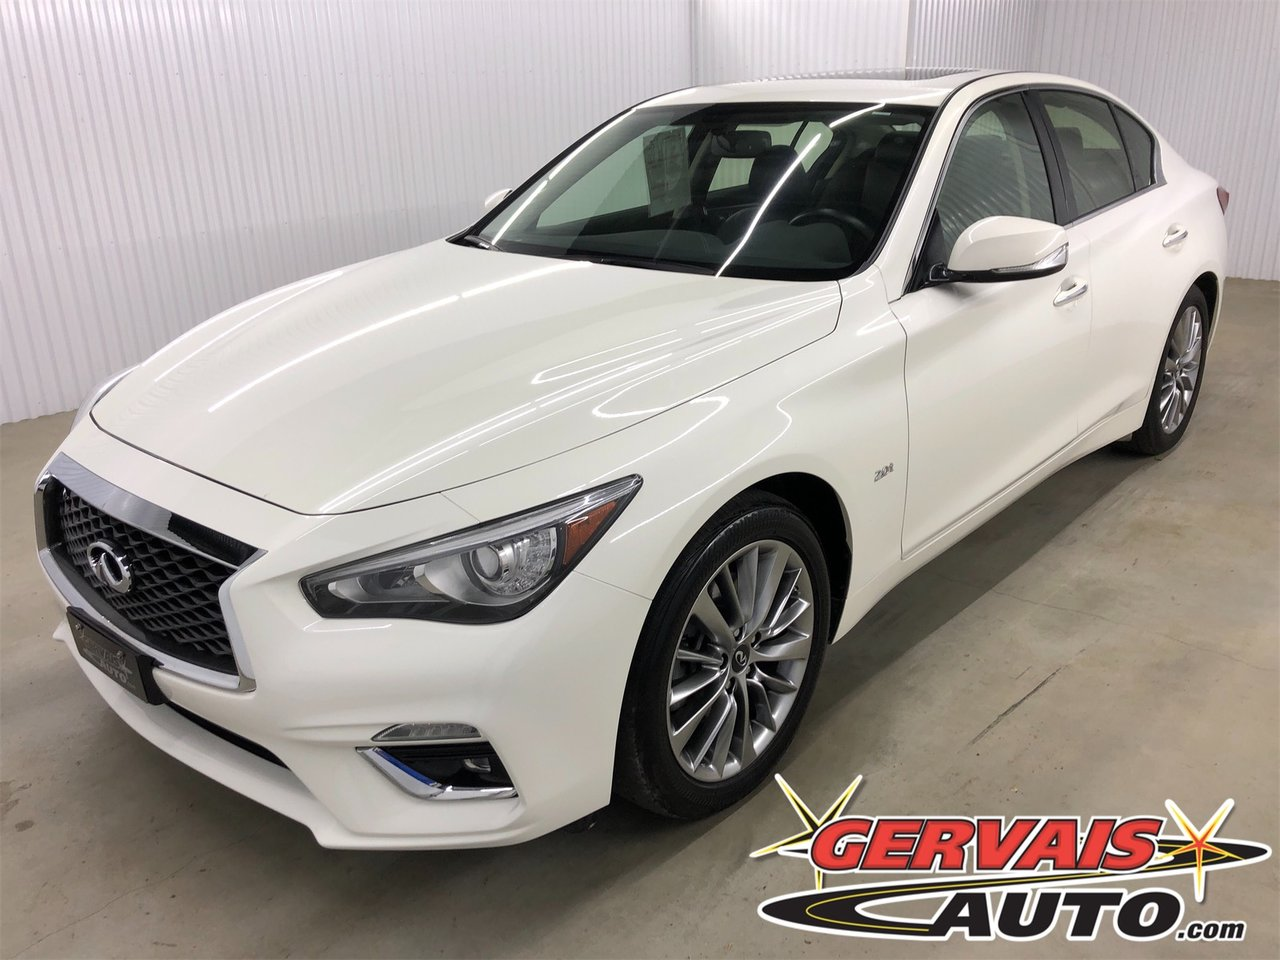 Infiniti Q50 2018 2.0t AWD LUXE GPS Bluetooth Cuir Toit Ouvrant Cam?ra MAGS